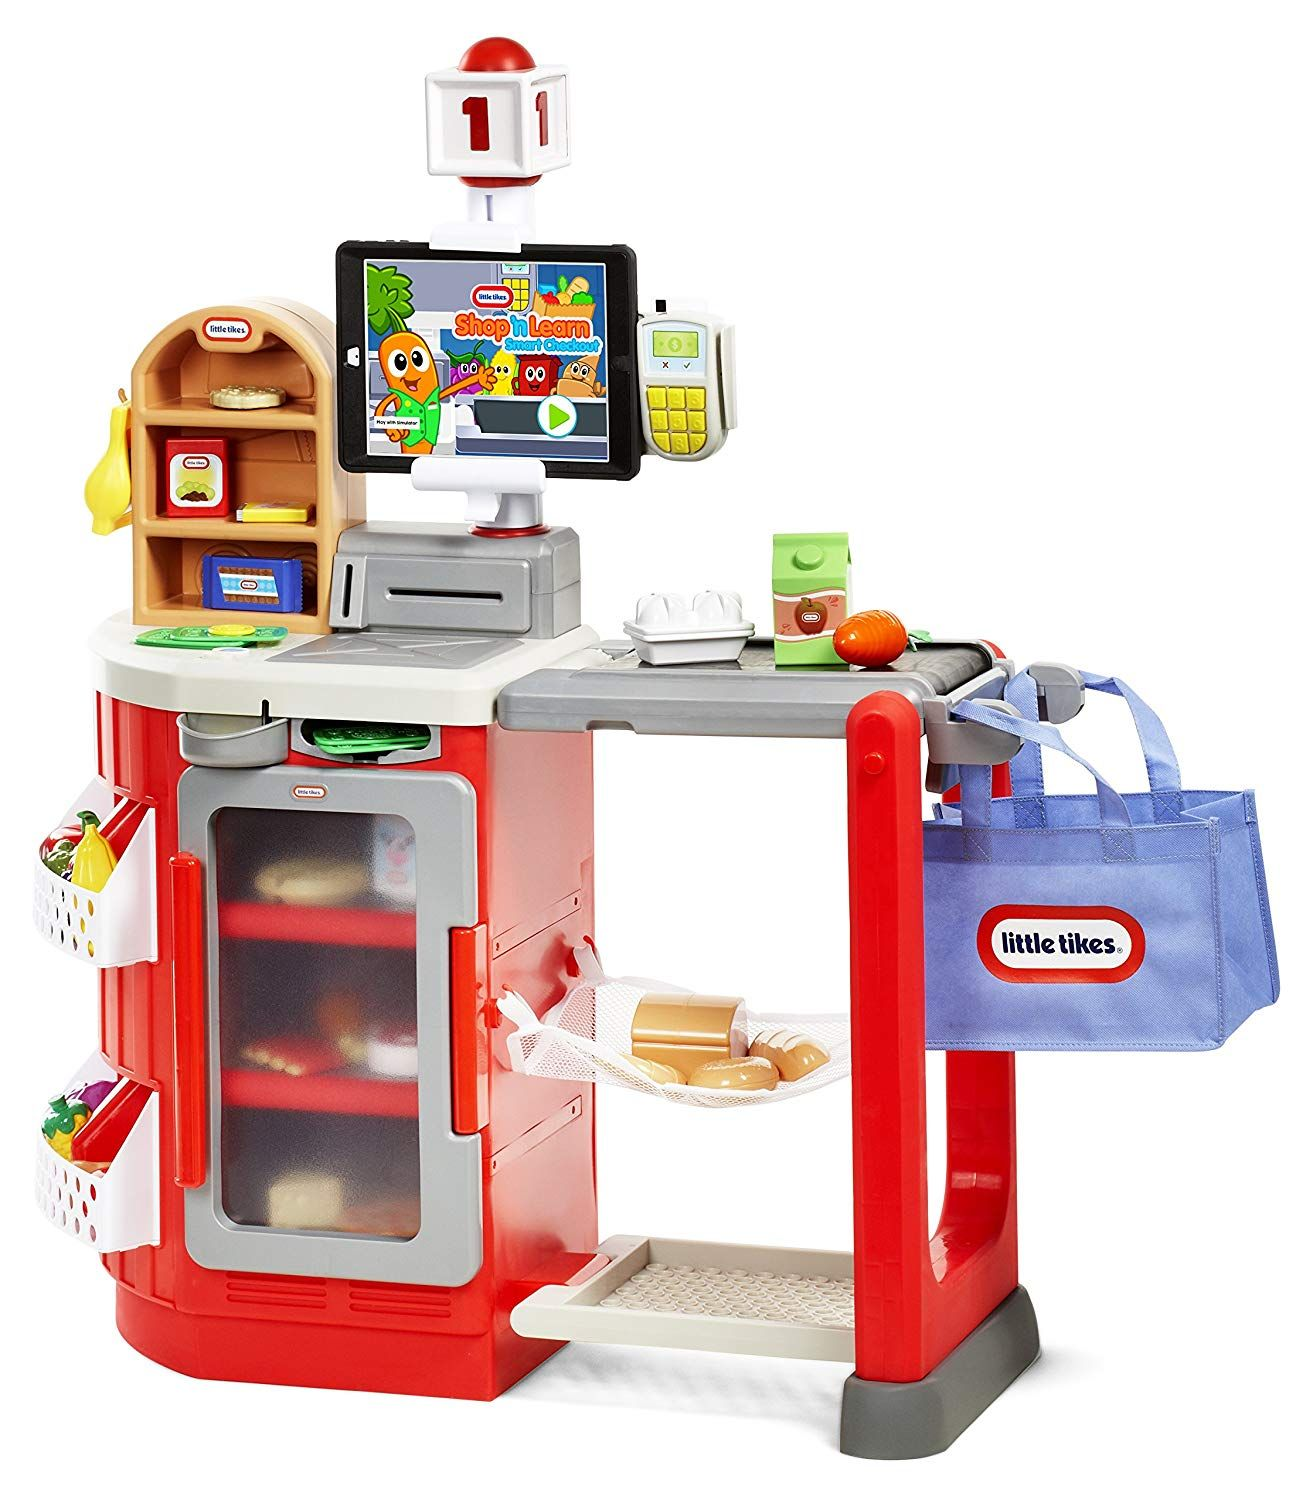 Little Tikes Shop 'N Learn Smart Checkout Best Deals and